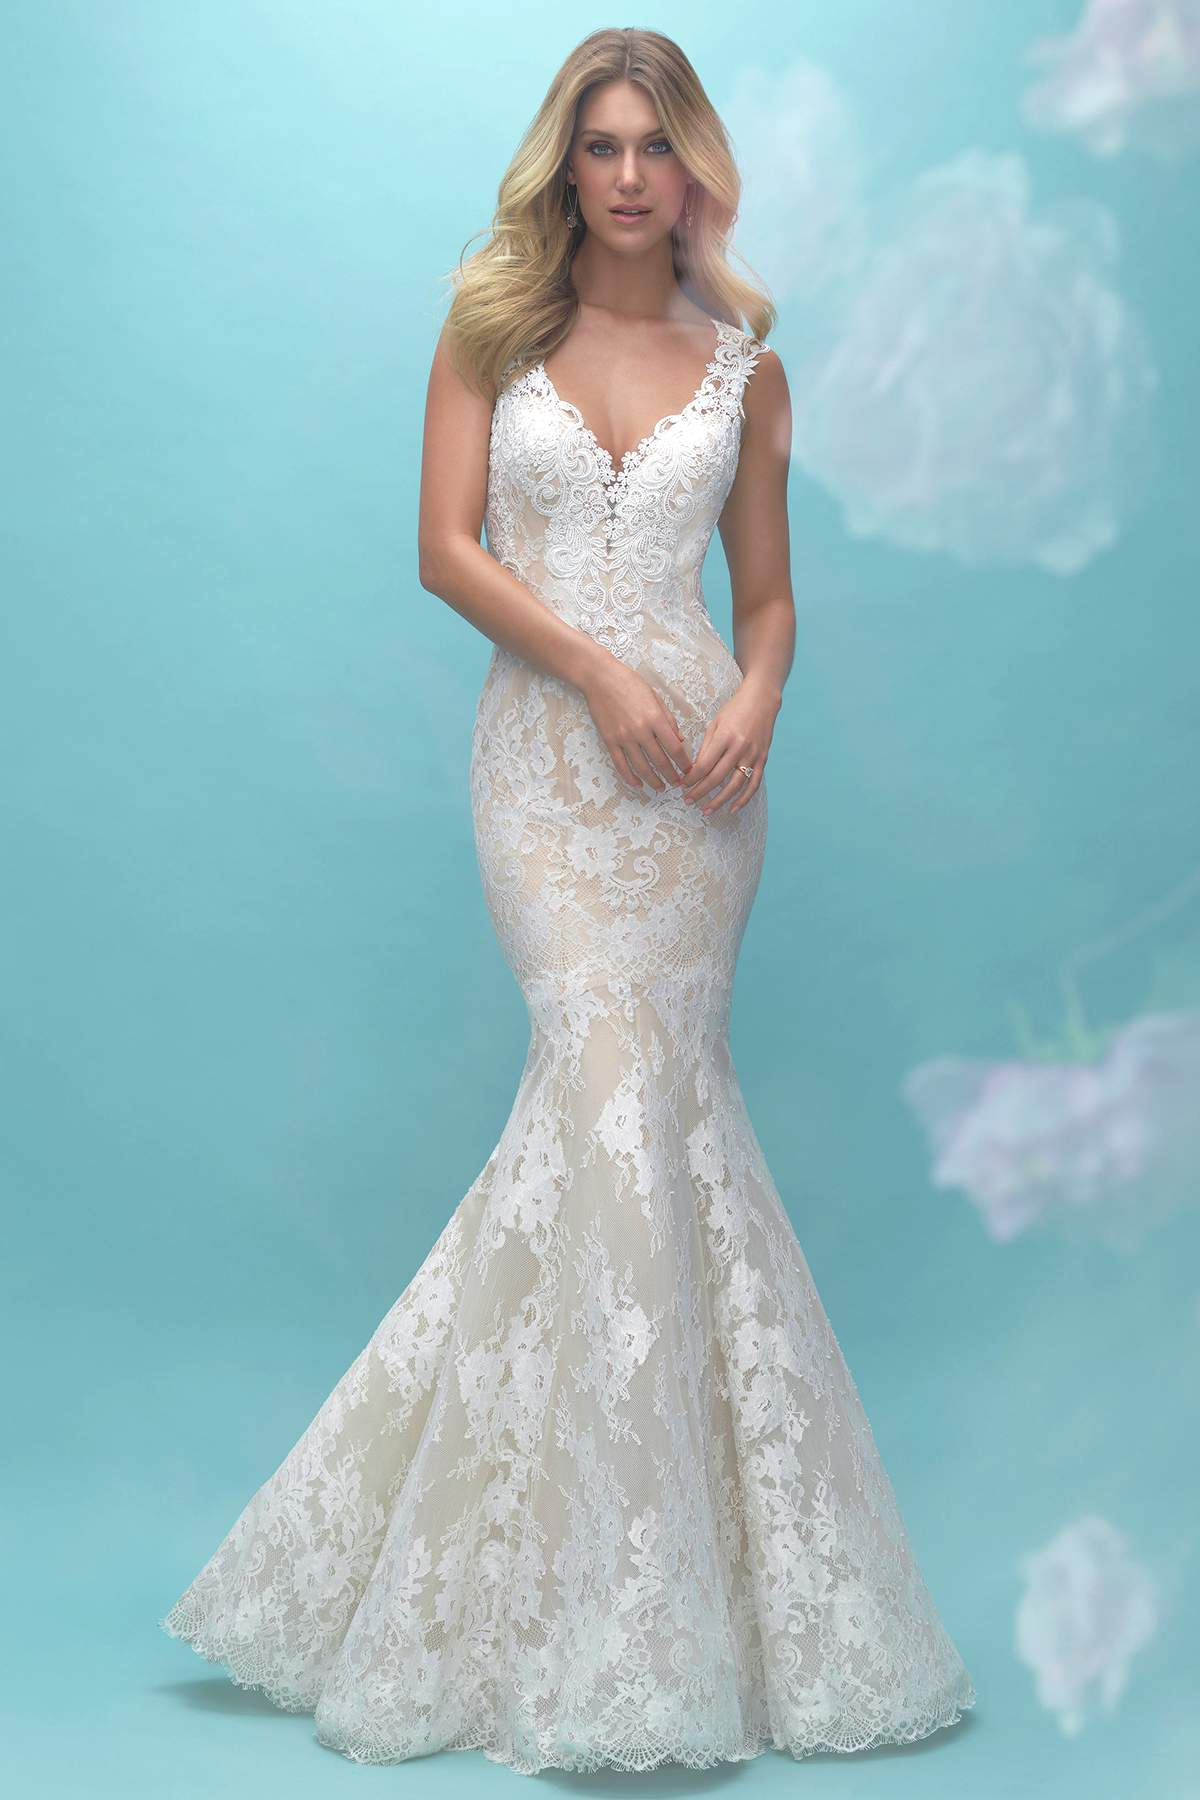 Style 9464 by Allure Bridals - Find Your Dream Dress